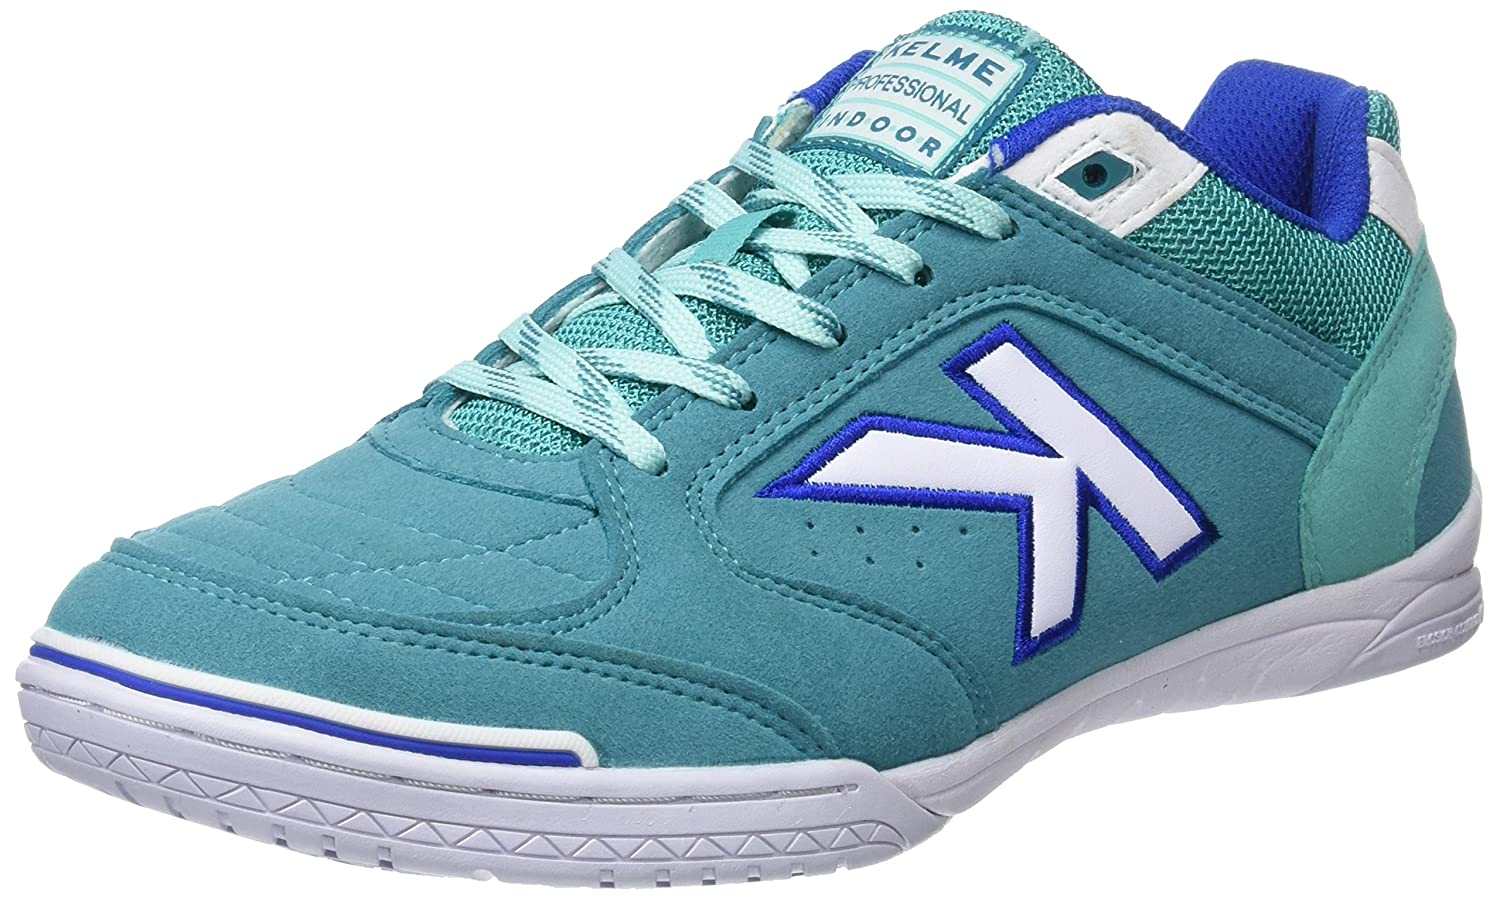 KELME Precision, Zapatillas Unisex Adulto